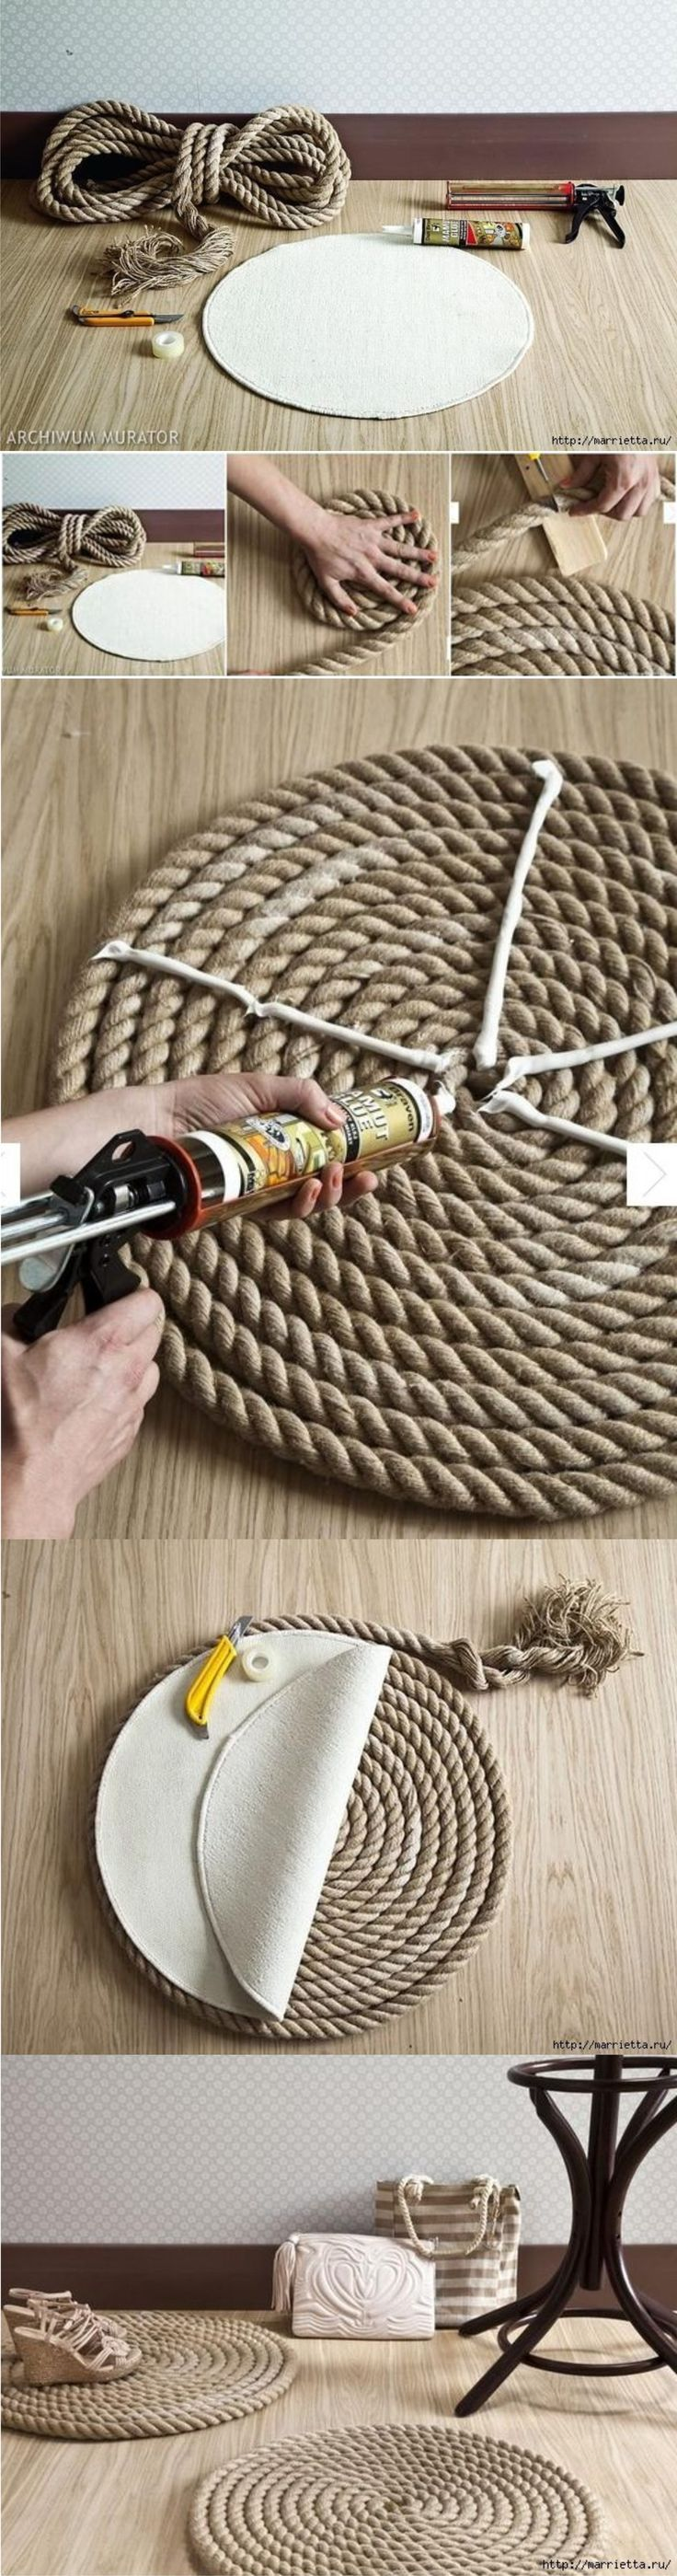 DIY Rope rug. Use the same idea to create rope place mats for a nautical themed tablescape.: